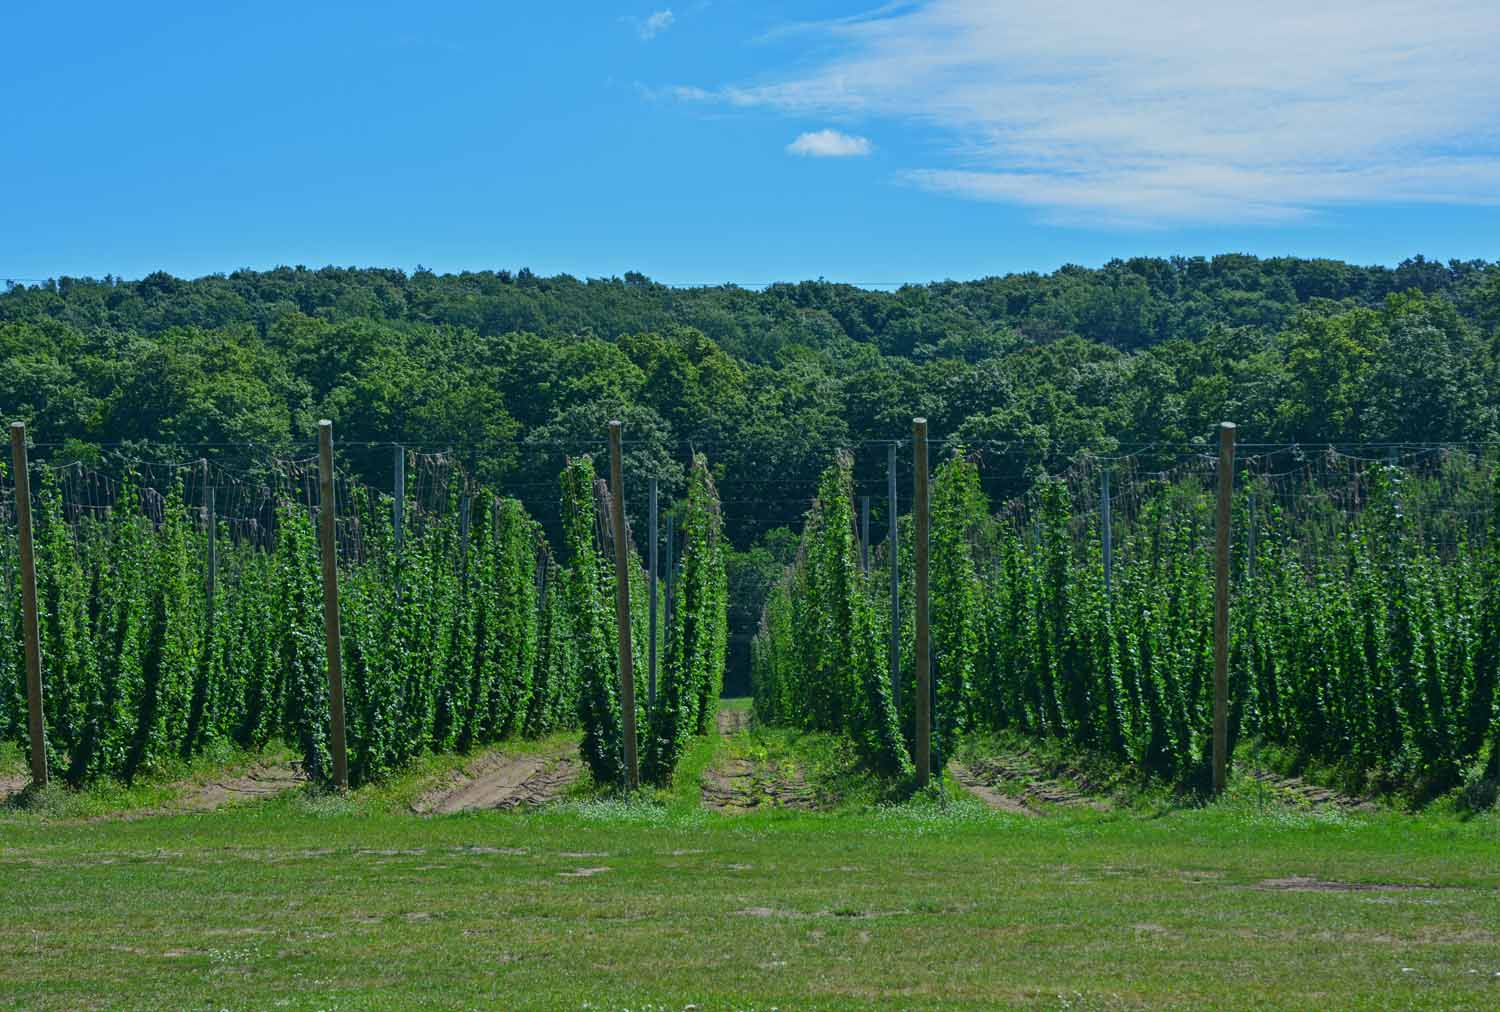 Hops Farms - The Up And Coming Thing